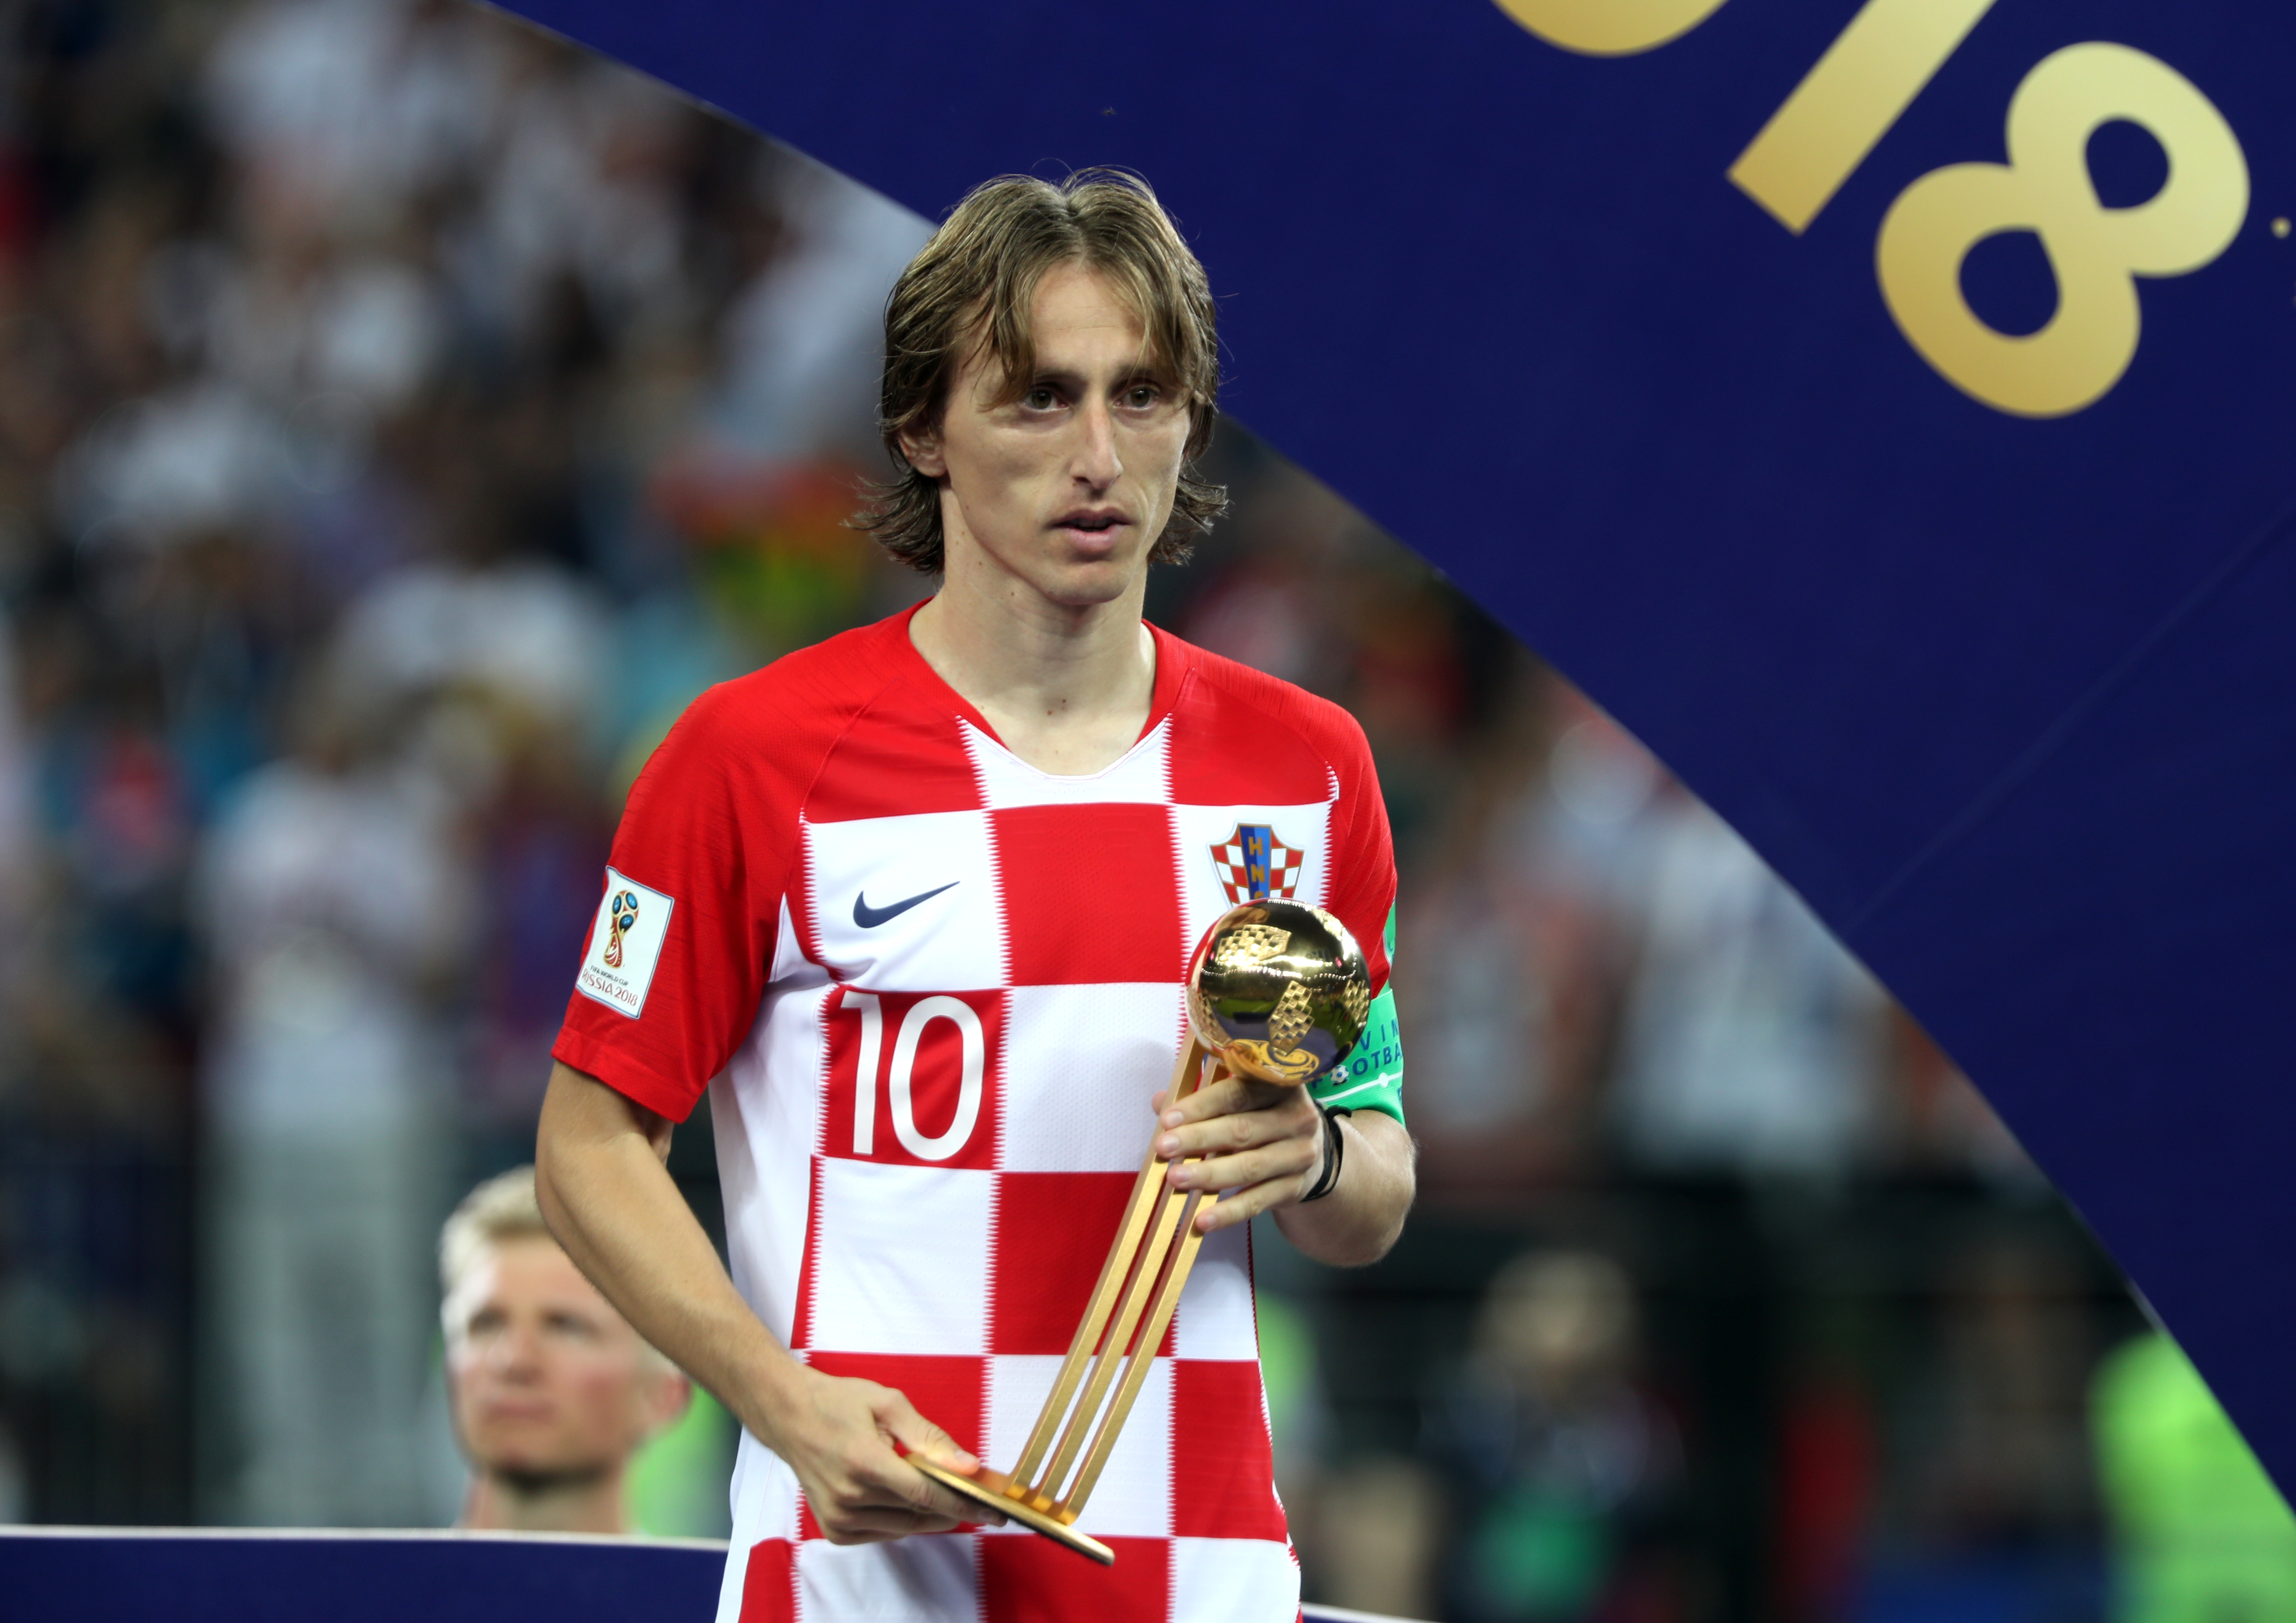 Modric with the Golden Ball award. Image: PA Images